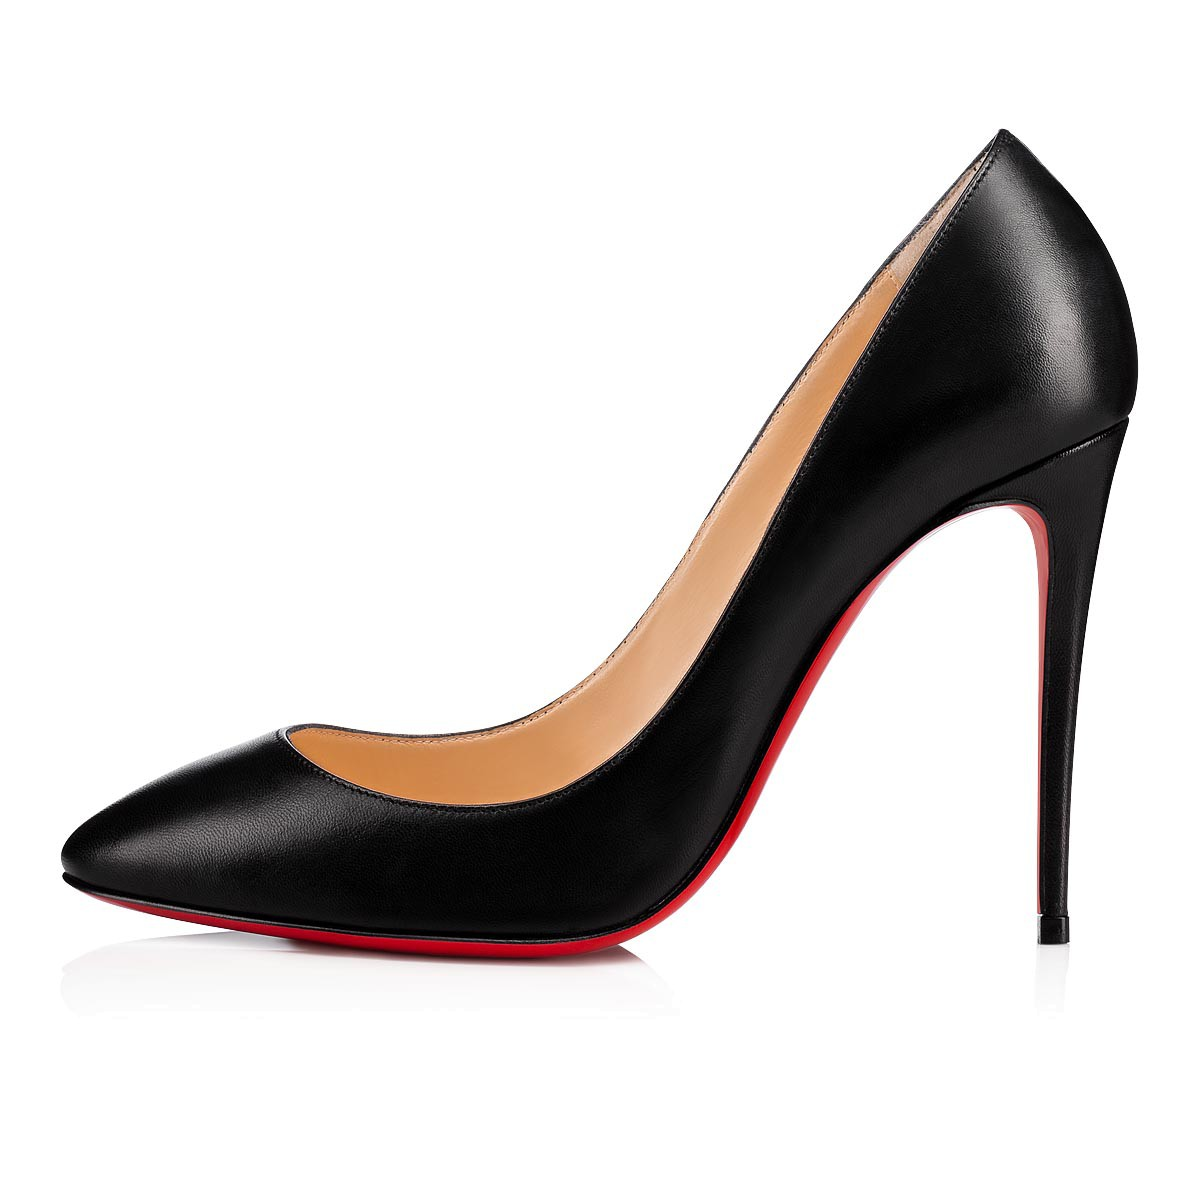 Shoes - Eloise - Christian Louboutin